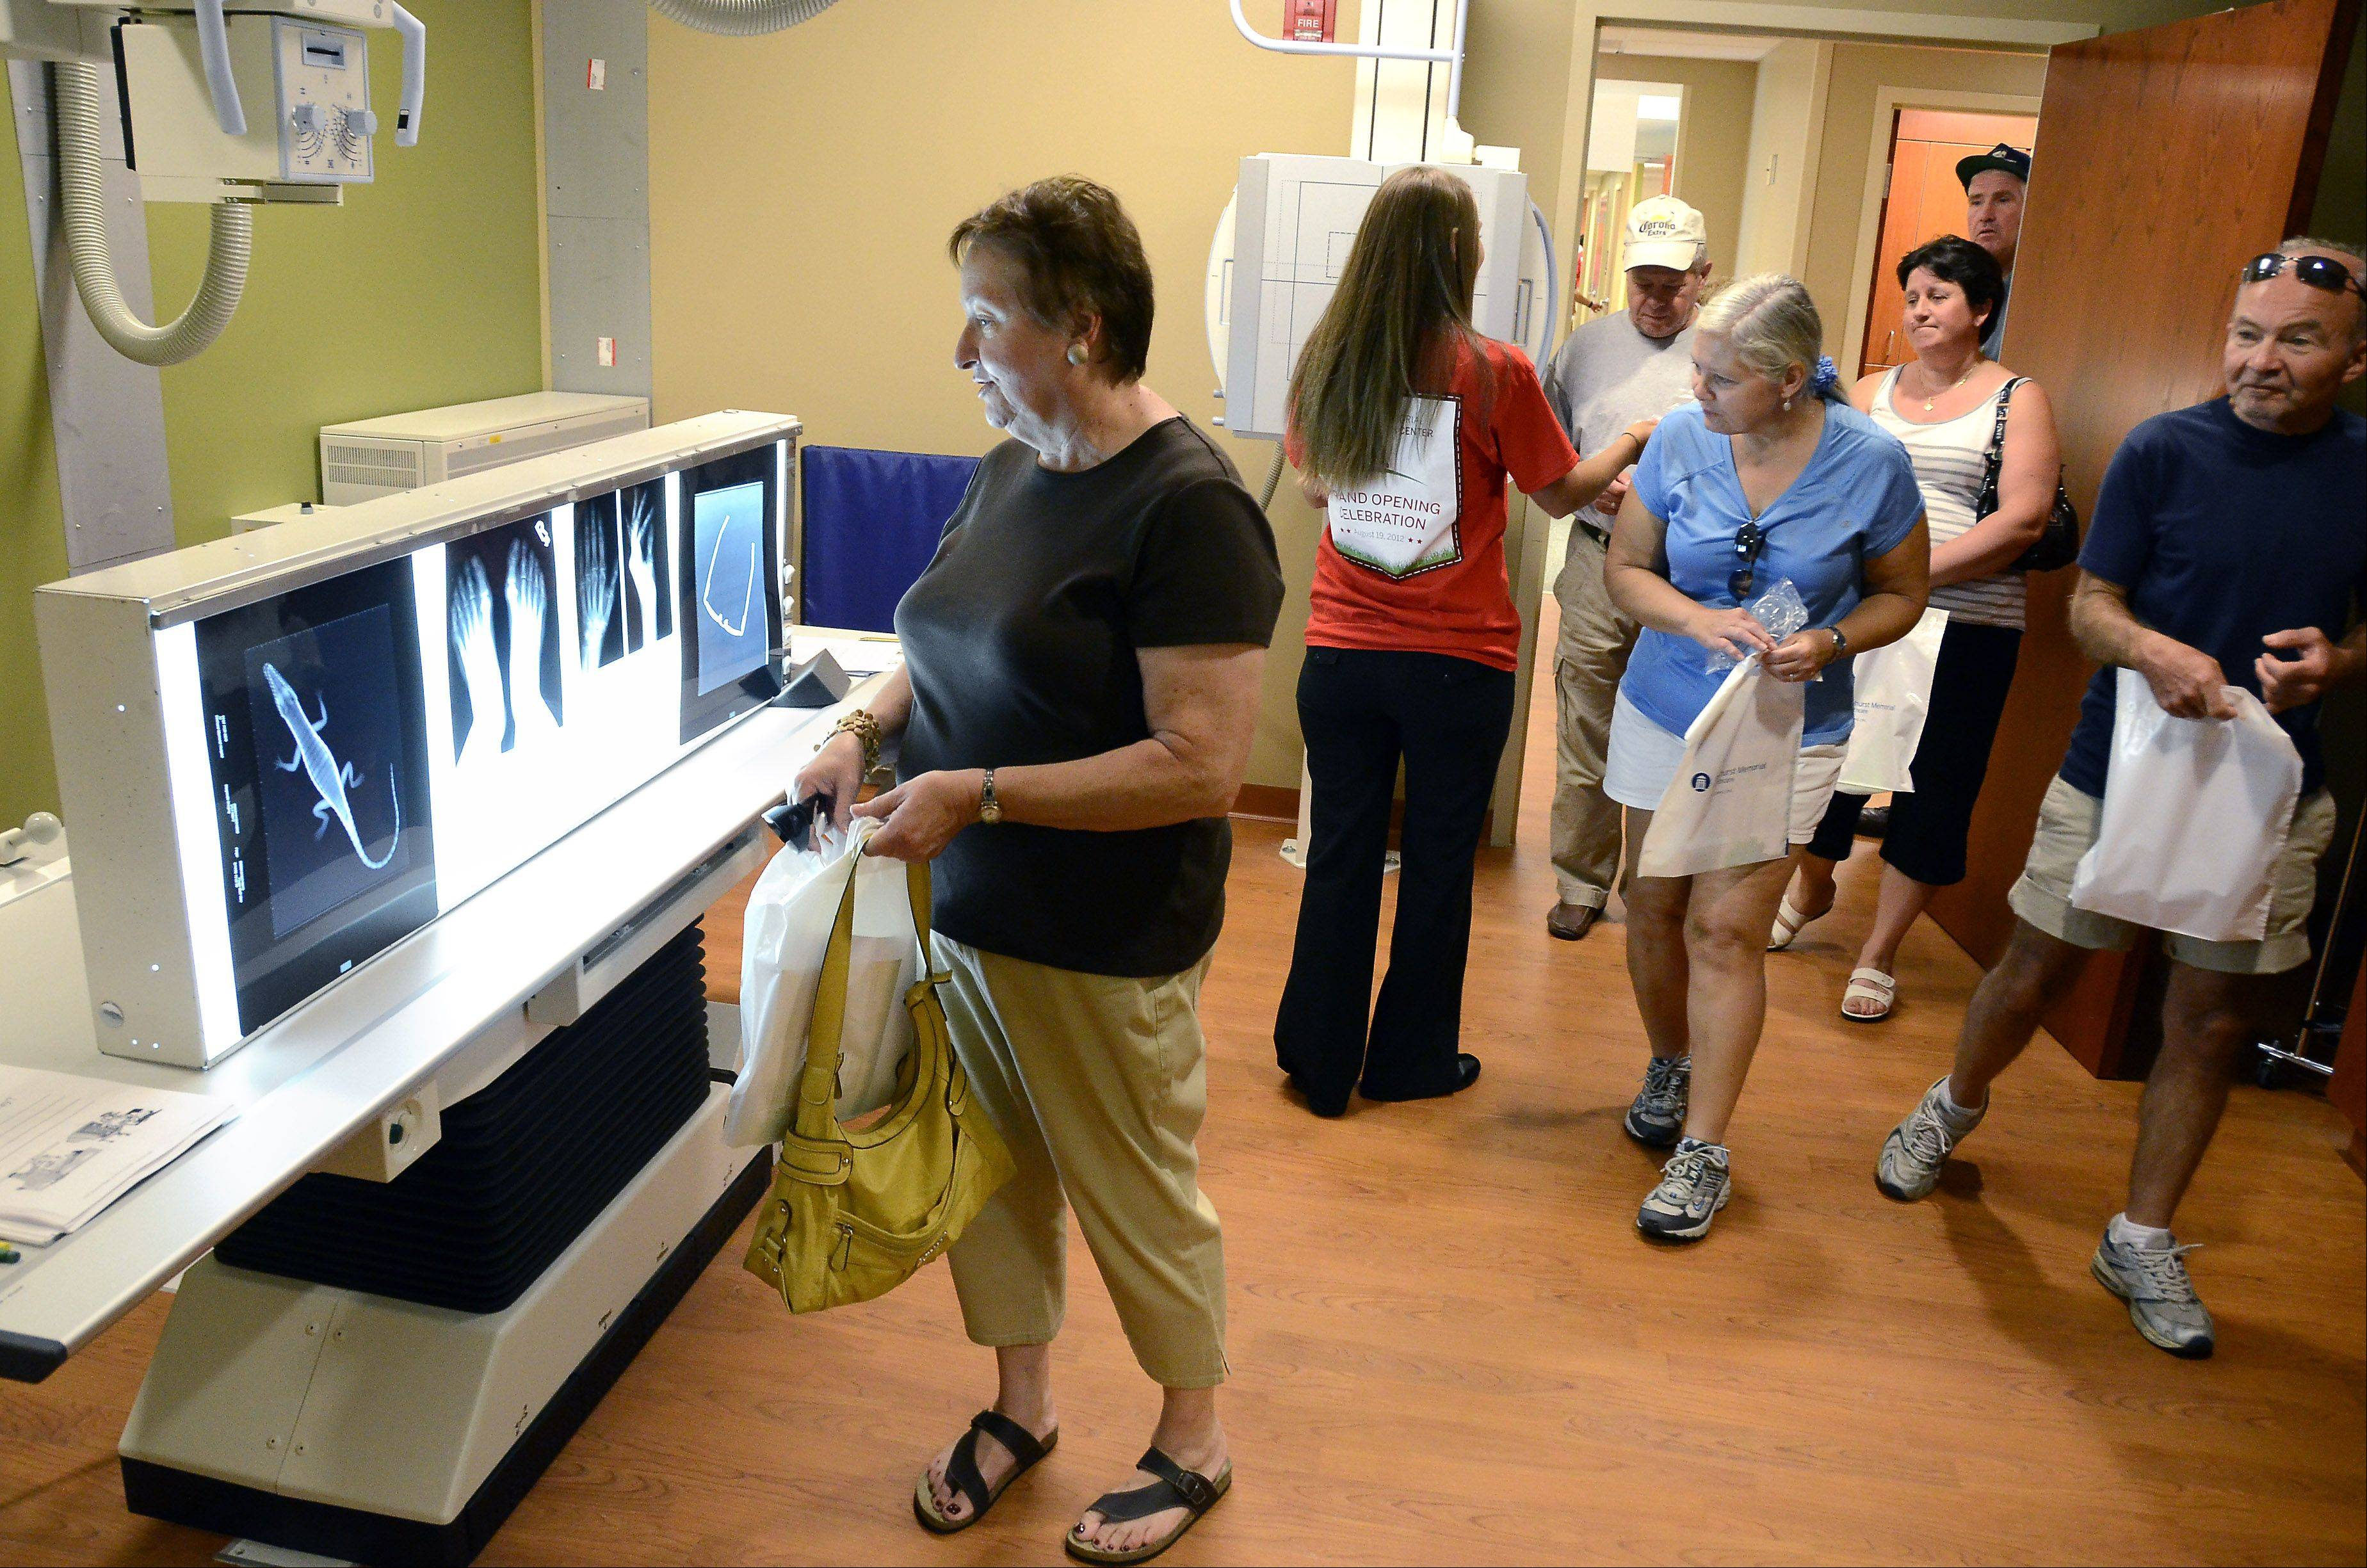 Guests tour the X-ray lab at the opening of the Elmhurst Memorial Hospital Addison Health Center Sunday in Addison.